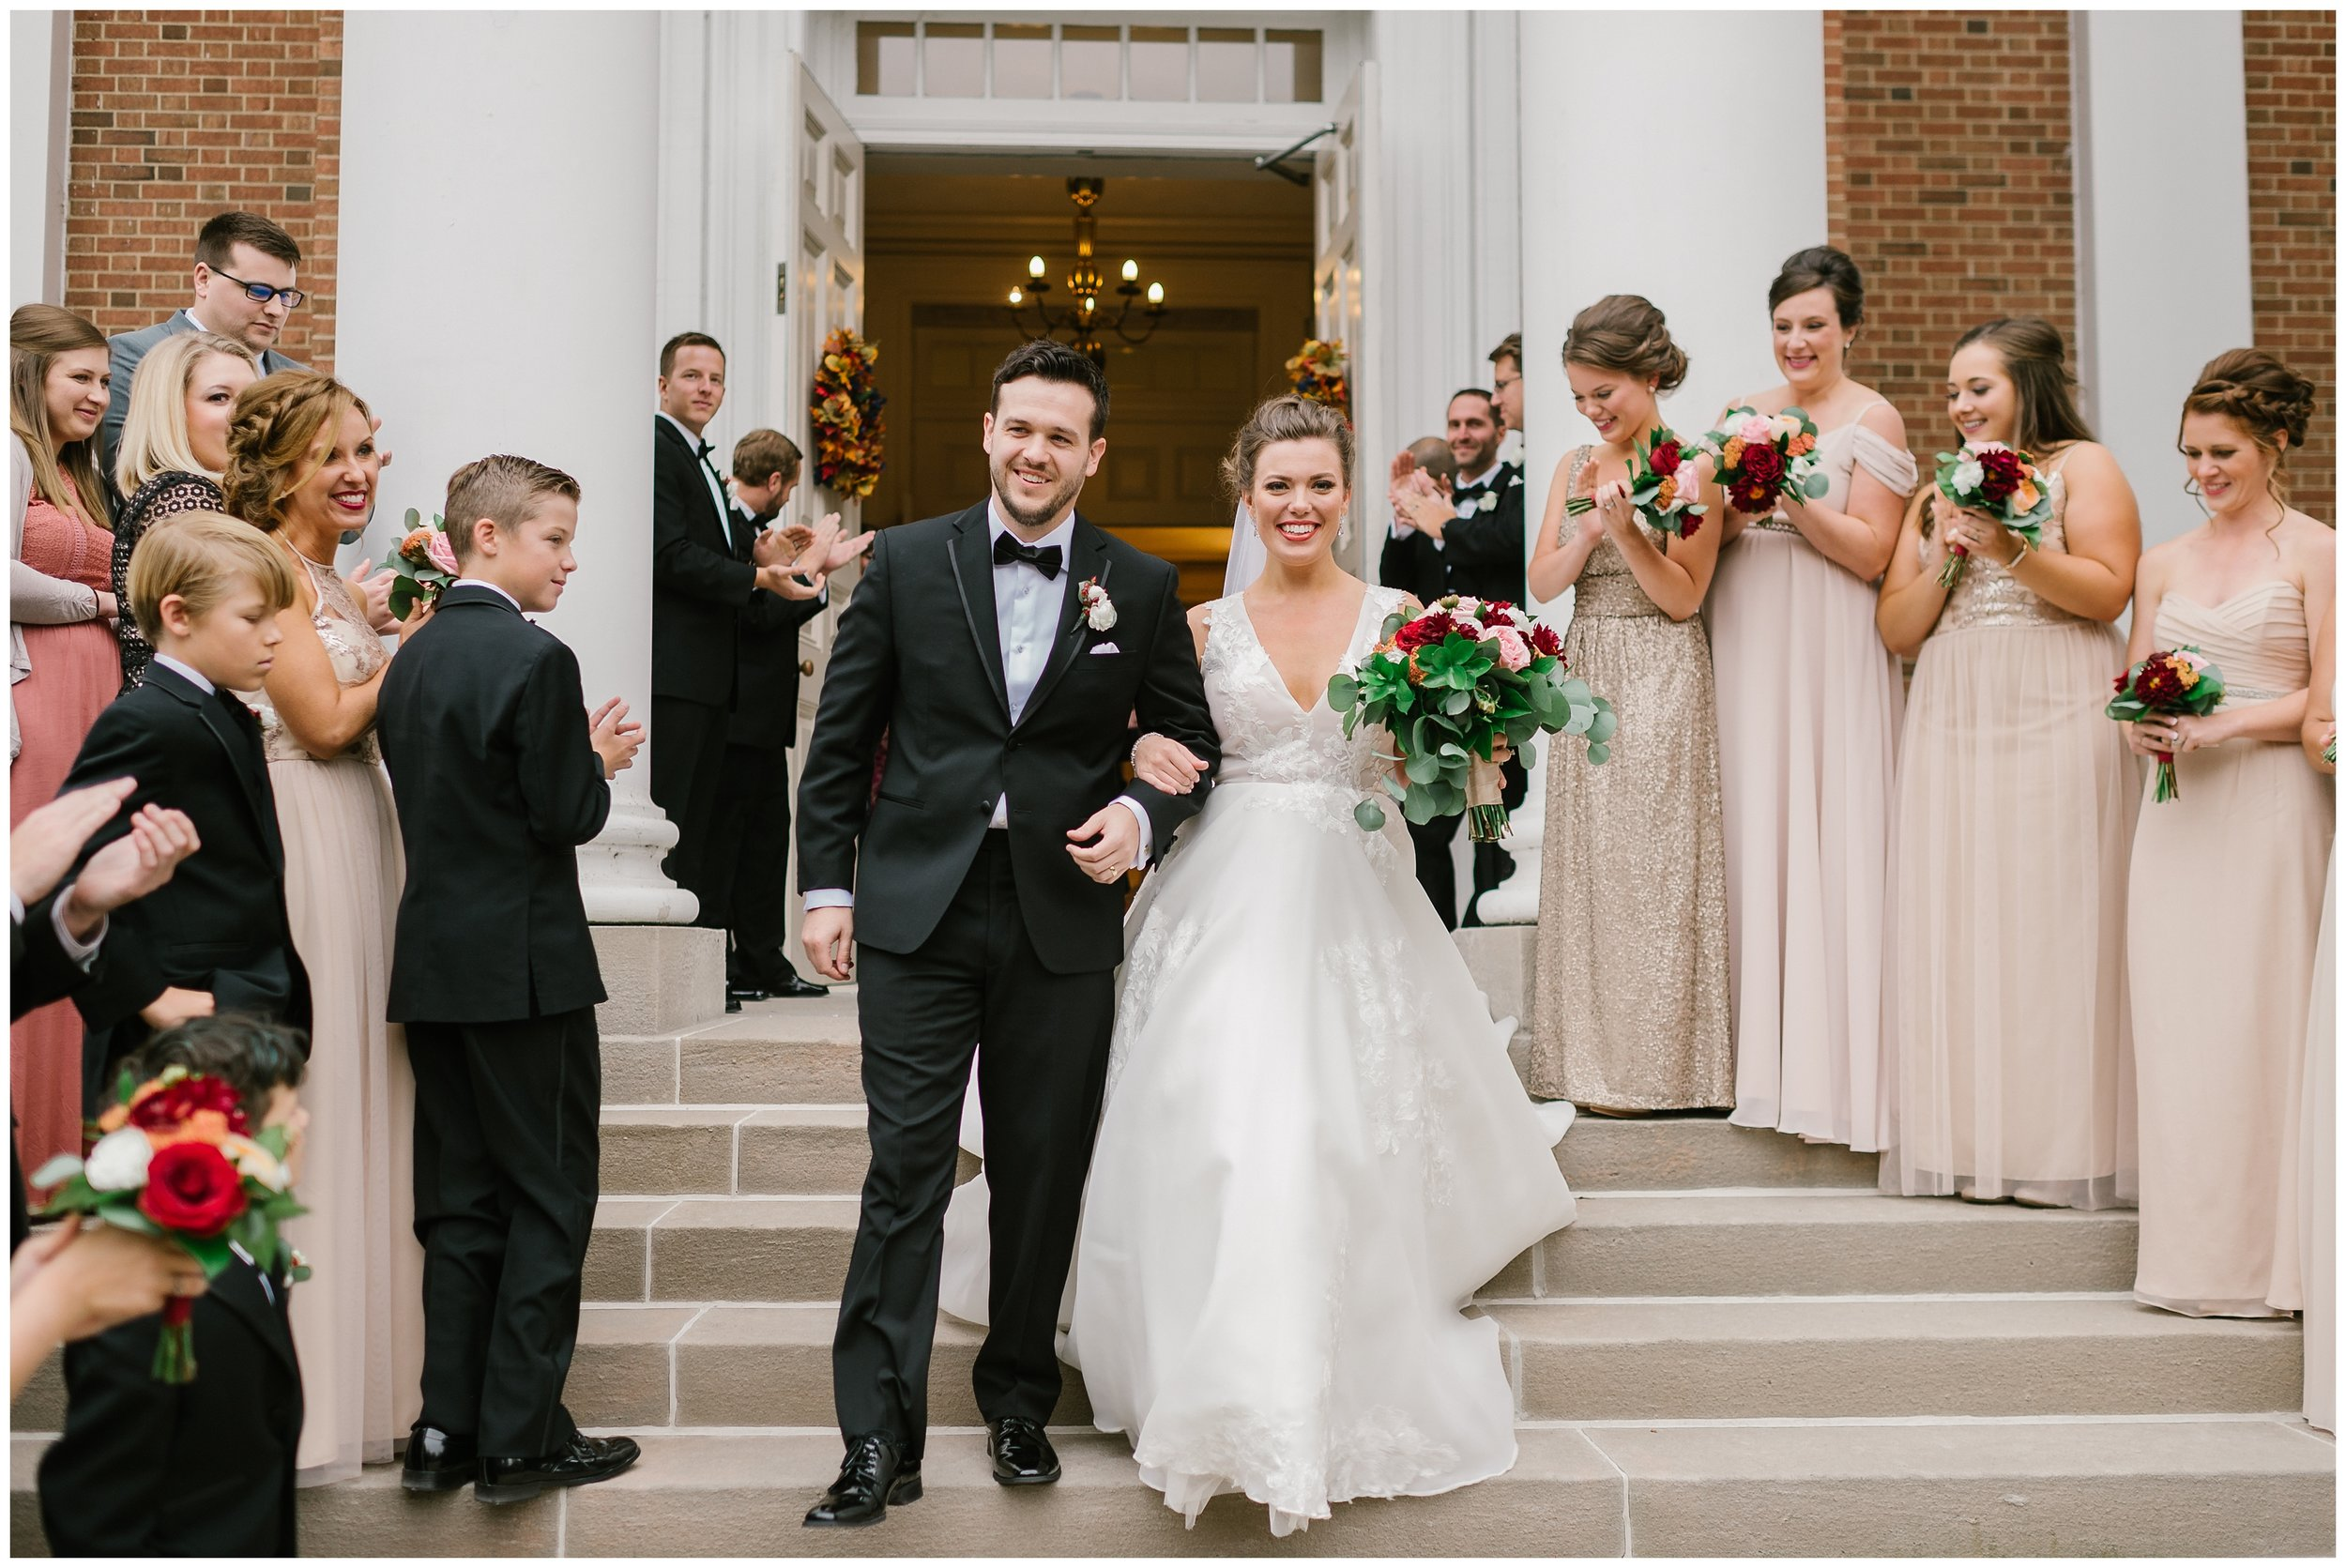 Rebecca_Shehorn_Photography_Indianapolis_Wedding_Photographer_7755.jpg